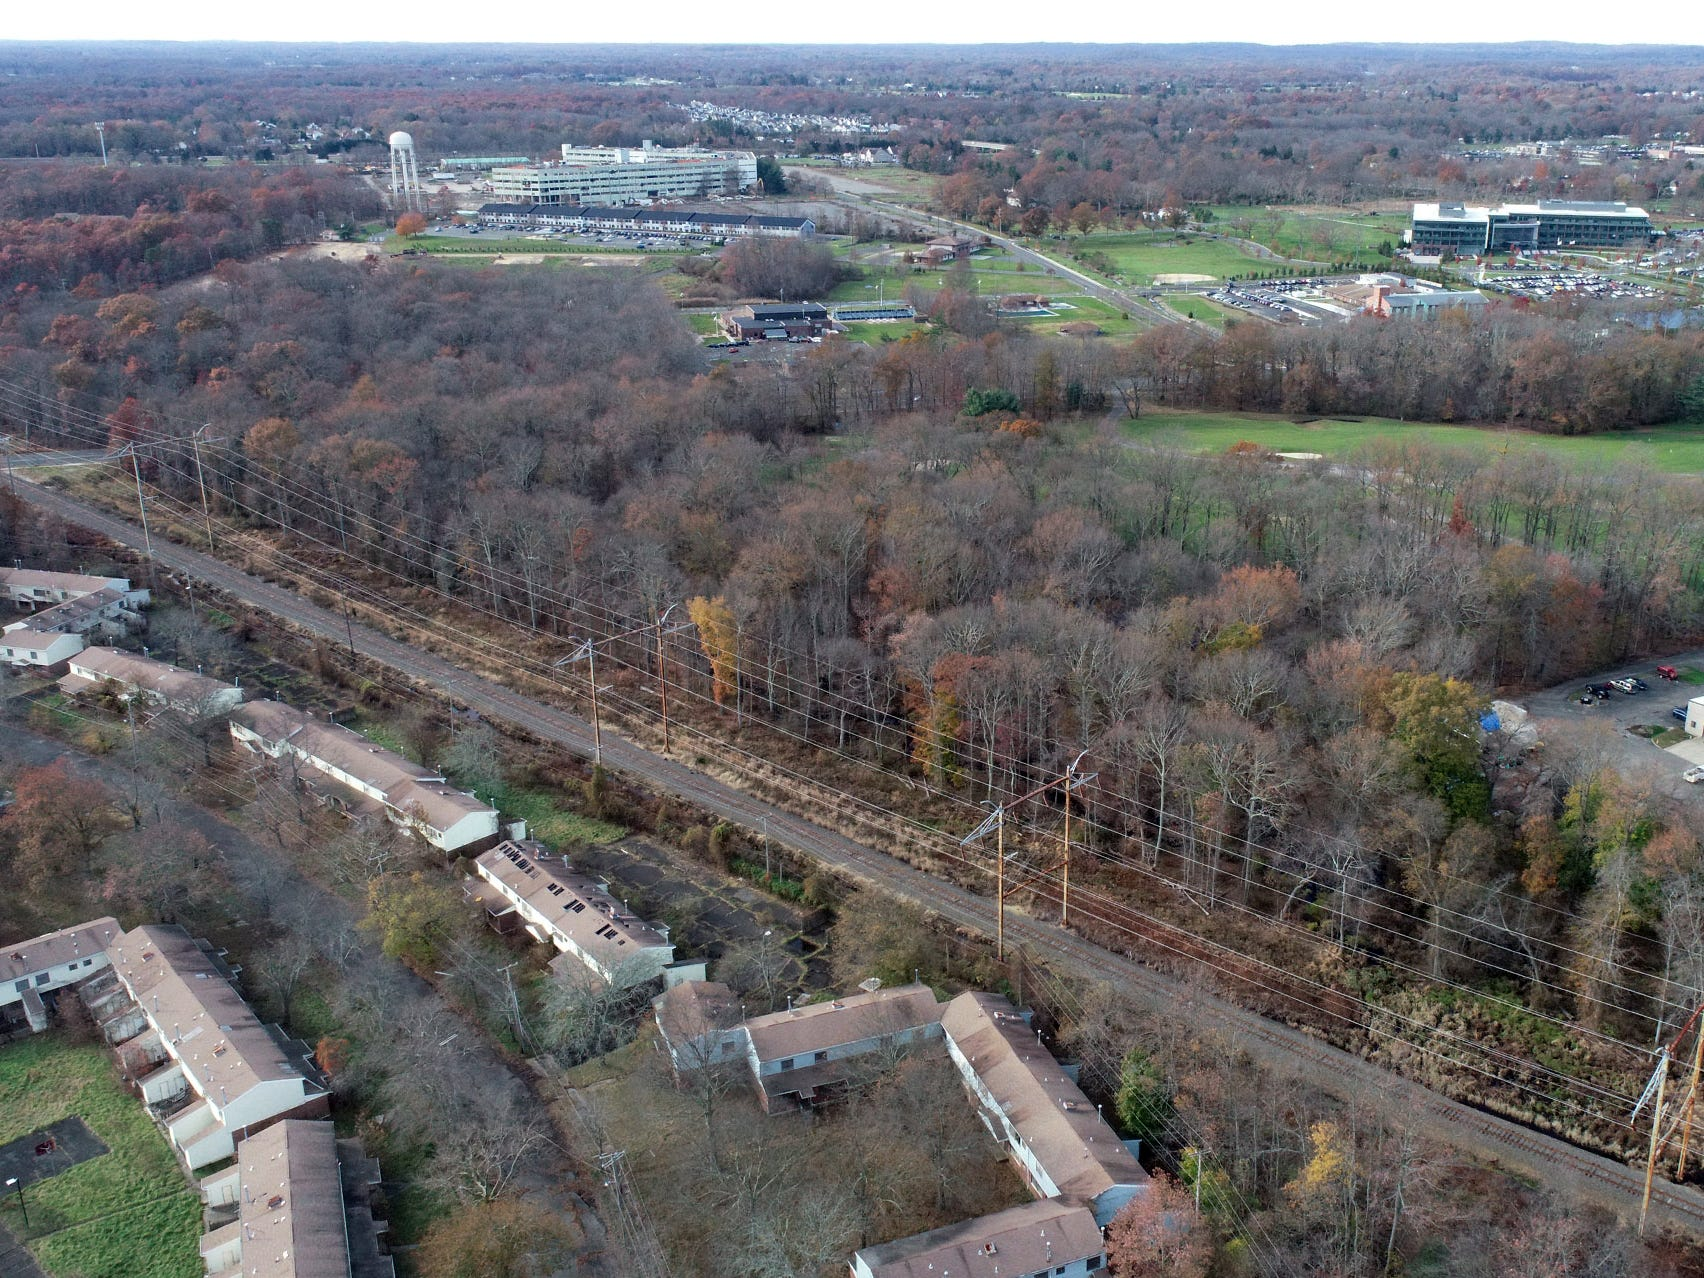 The Howard Commons area (lower left) on the former Fort Monmouth property is shown Wednesday, November 14, 2018.